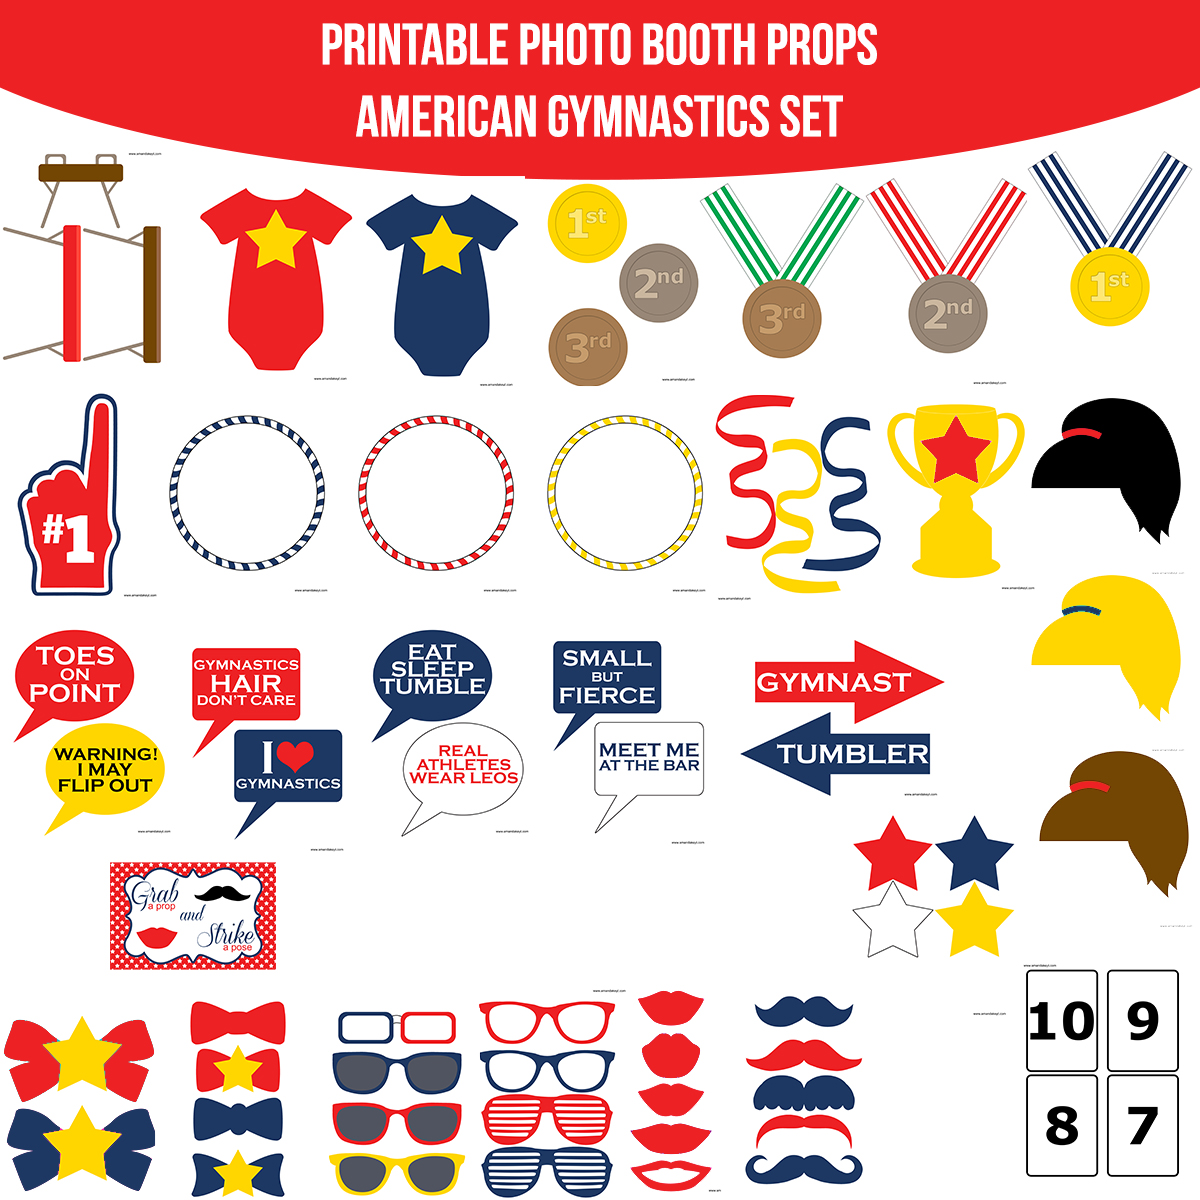 See the Set - To View The Whole American Gymnastics Printable Photo Booth Prop Set Click Here